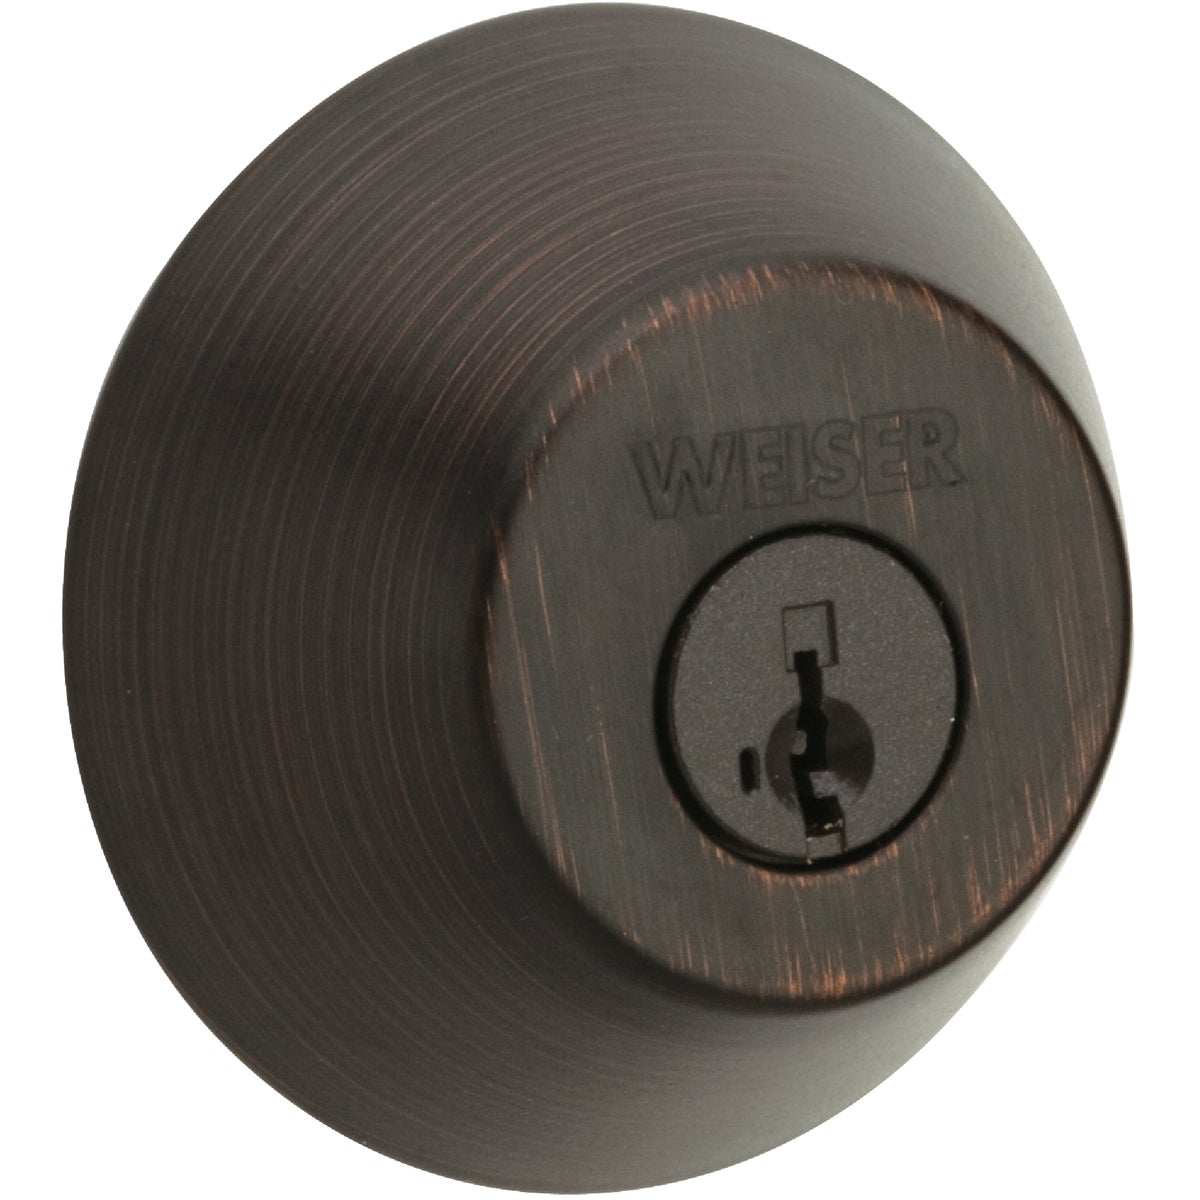 VB 2CYL SK DEADBOLT - GD9371X 11P SMT K4 by Weiser Lock